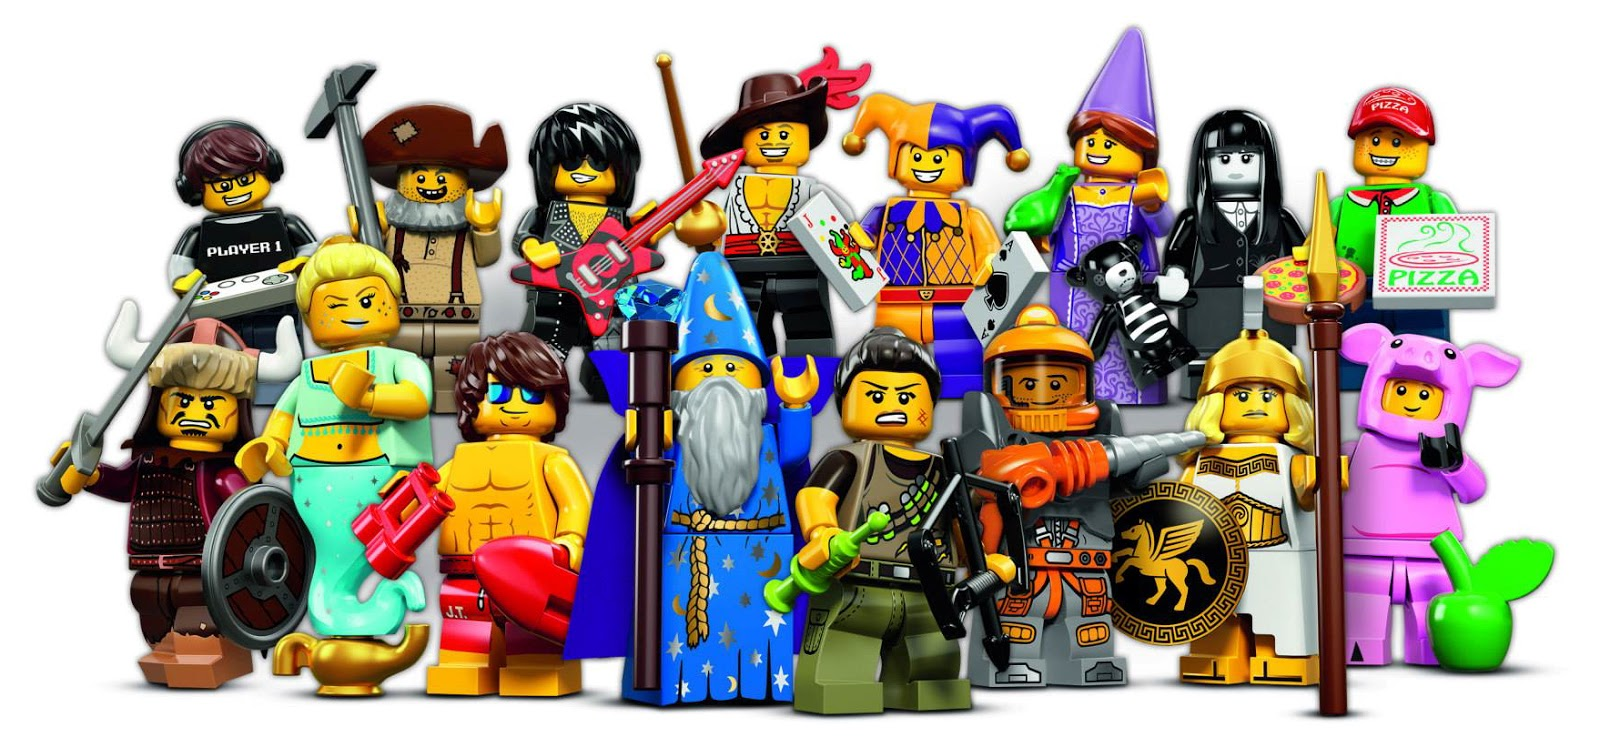 lego minifigures series 12 rarity guide